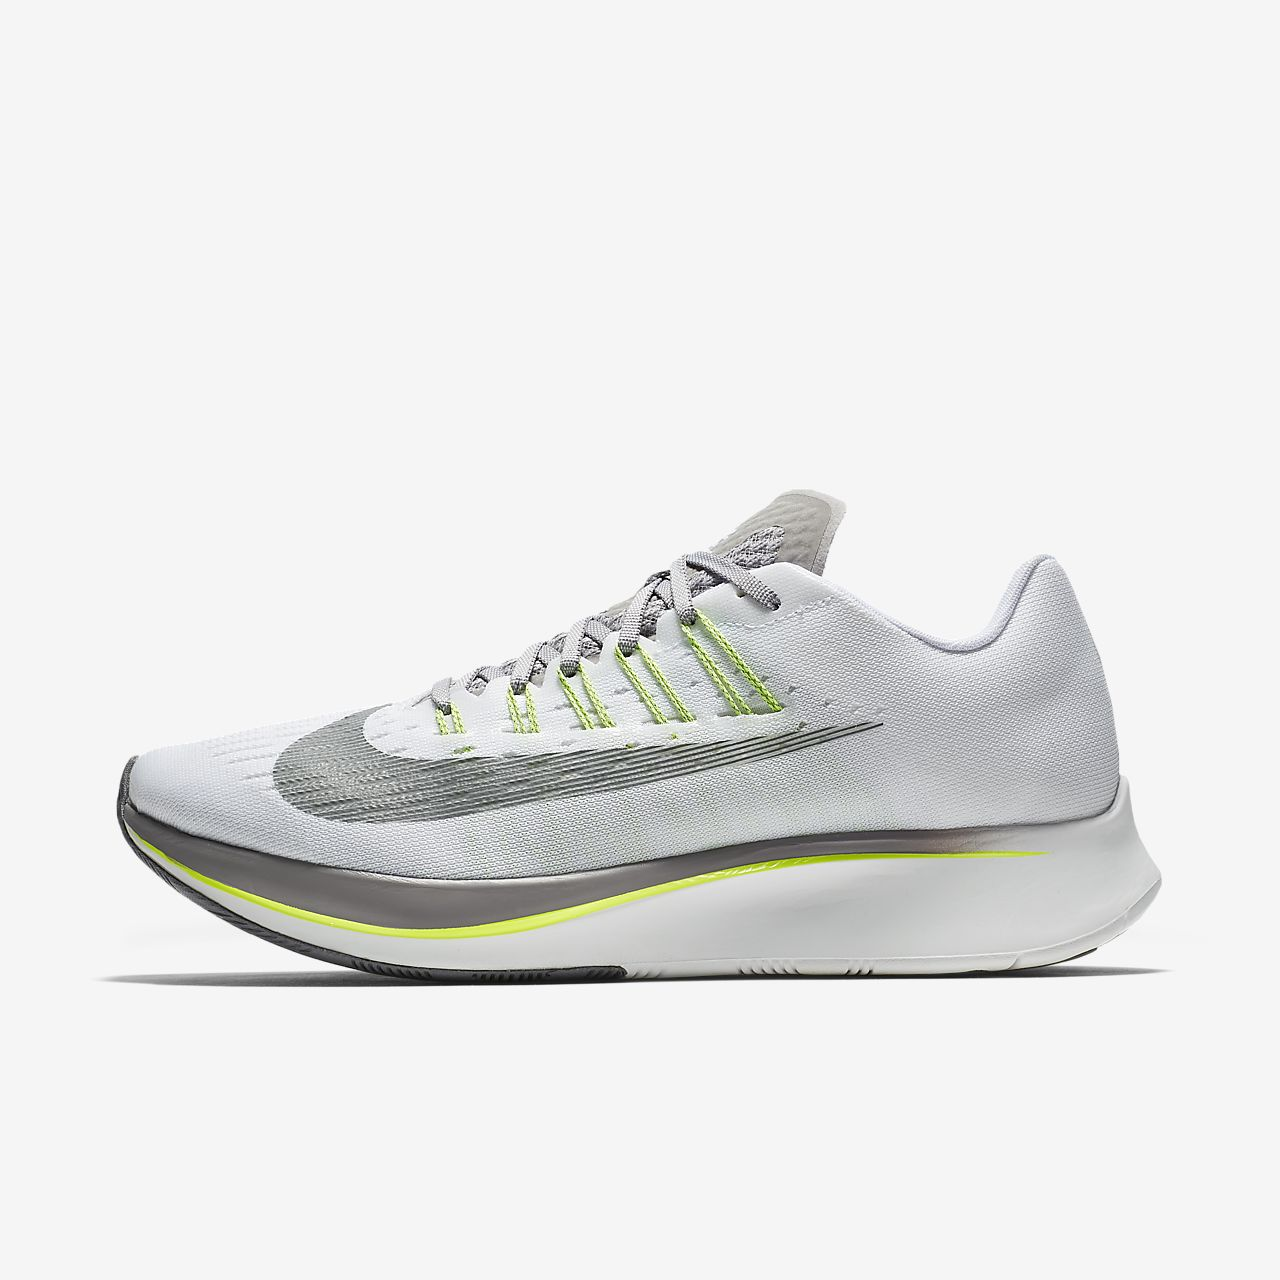 sports shoes 77448 110a9 ... Nike Zoom Fly Men s Running Shoe